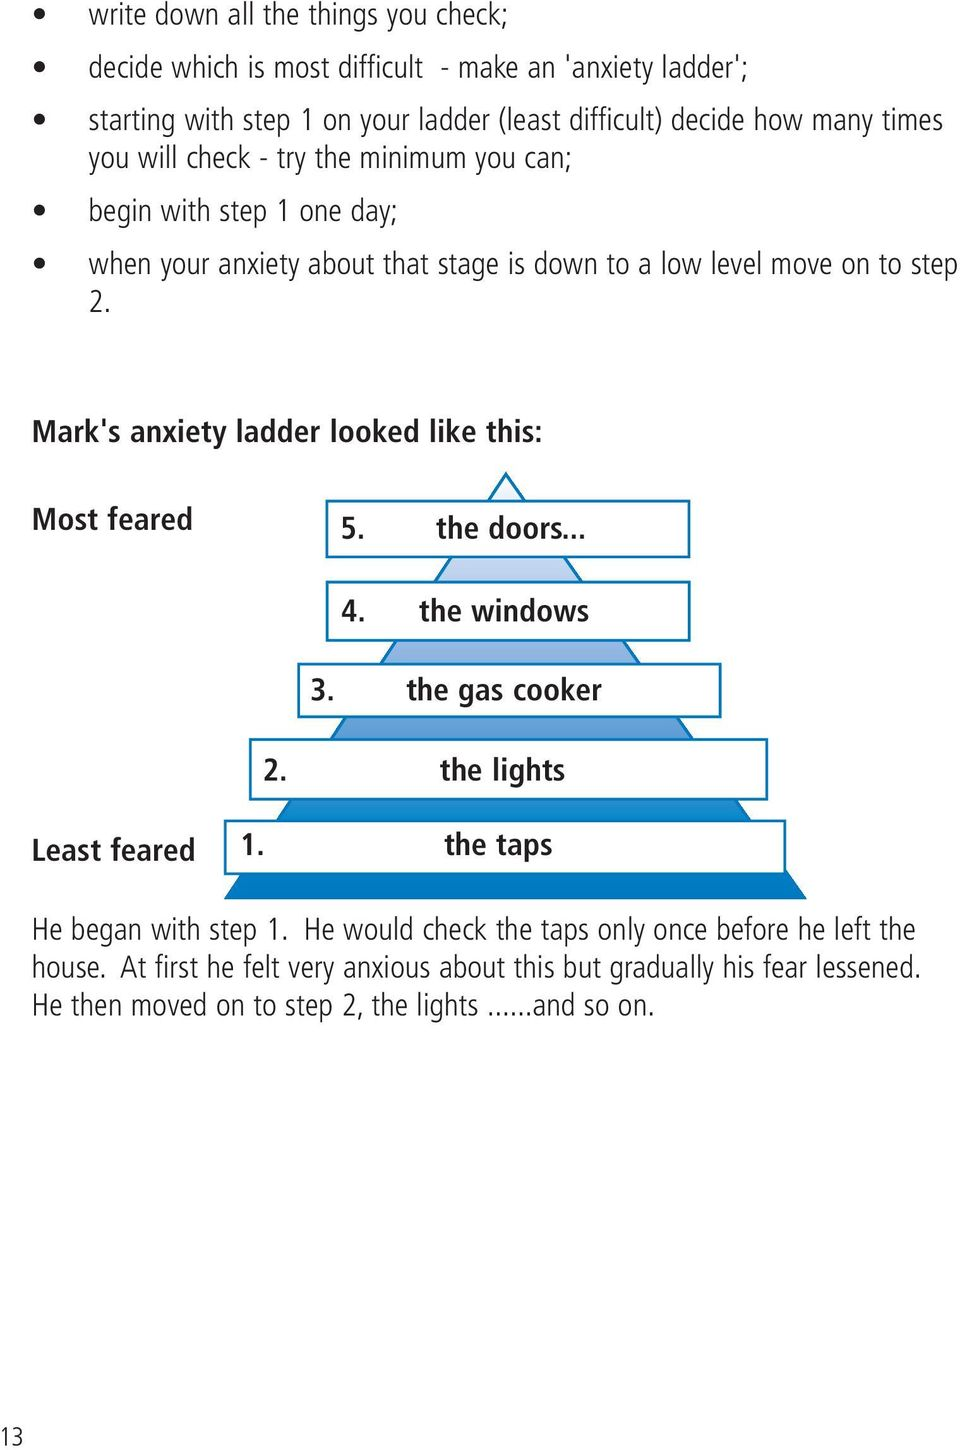 Mark's anxiety ladder looked like this: Most feared 5. the doors... 4. the windows 3. the gas cooker 2. the lights Least feared 1. the taps He began with step 1.